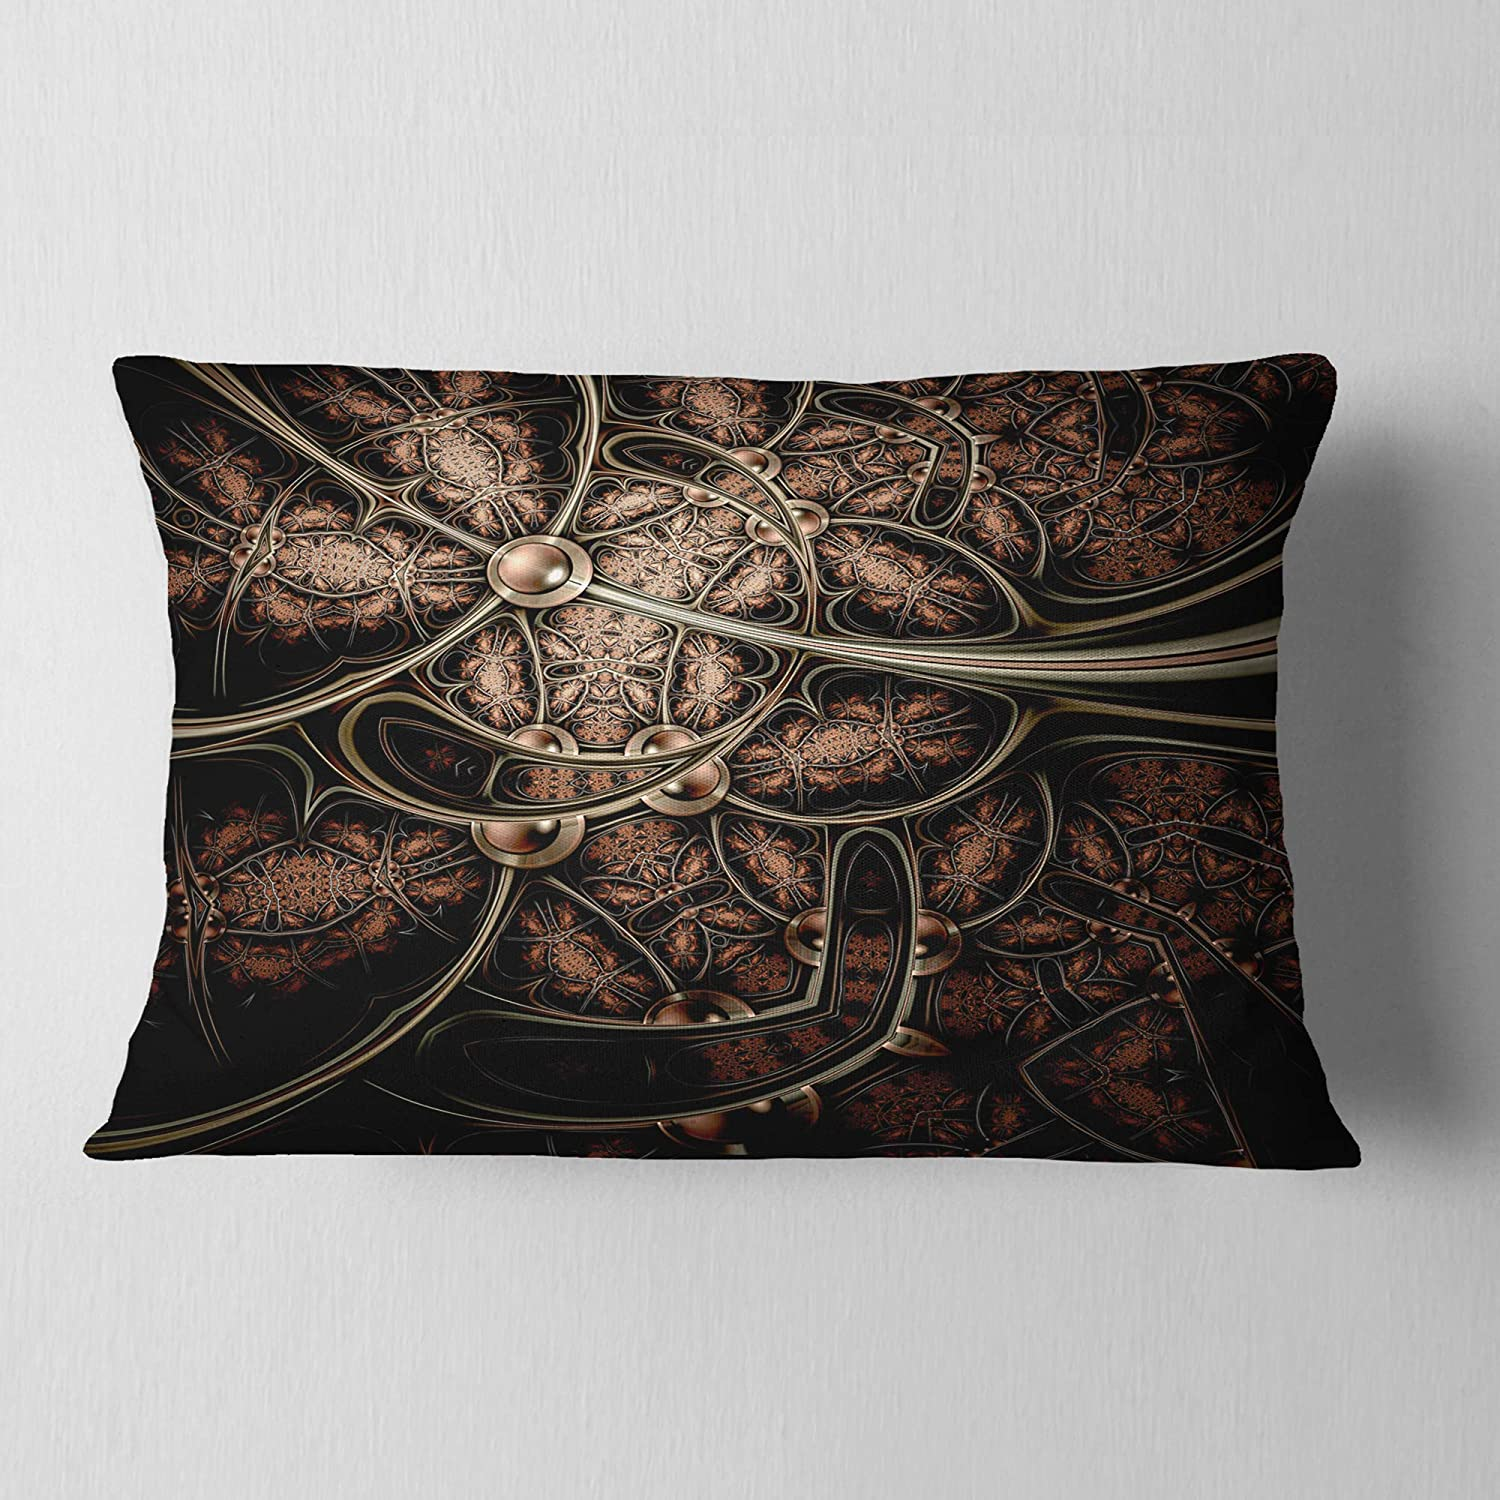 Designart CU7272-12-20 Light Purple Metallic Fabric Pattern Abstract Lumbar Cushion Cover for Living Room Sofa Throw Pillow 12 in in x 20 in